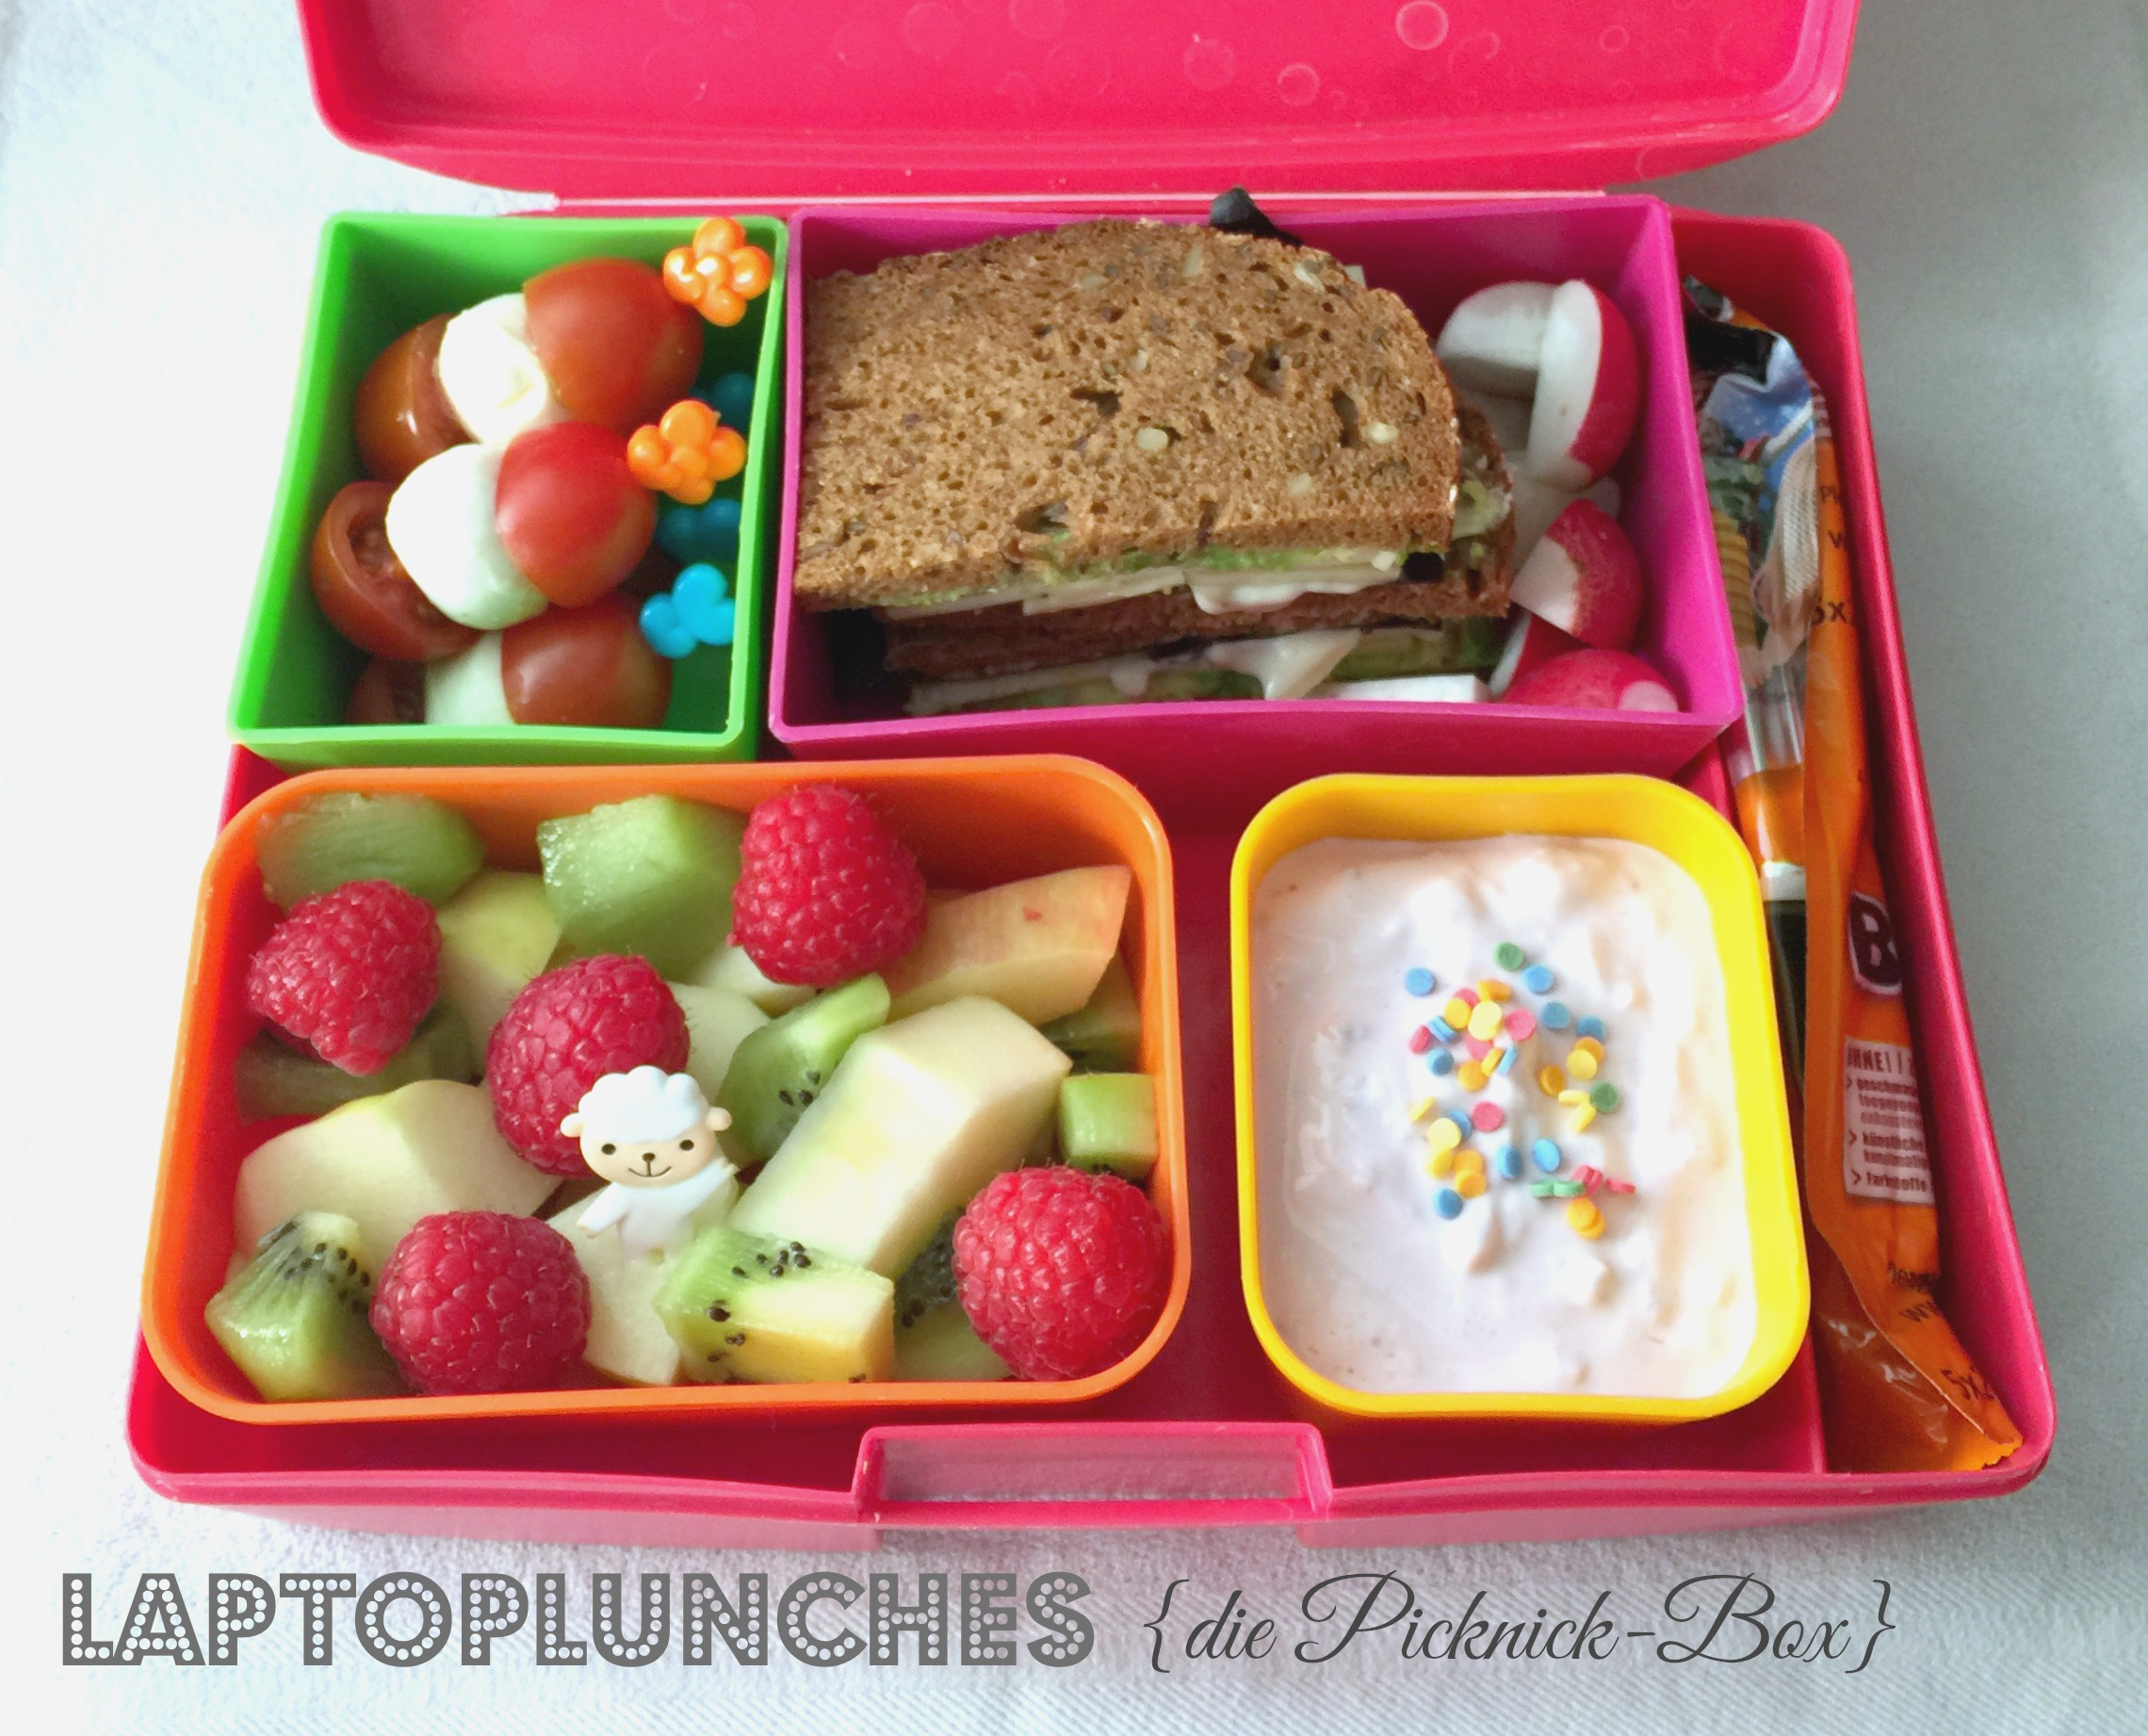 laptoplunches lunchboxinspiration lunchboxdiary picknick bentobox kidsbento snackbox brotdose. Black Bedroom Furniture Sets. Home Design Ideas